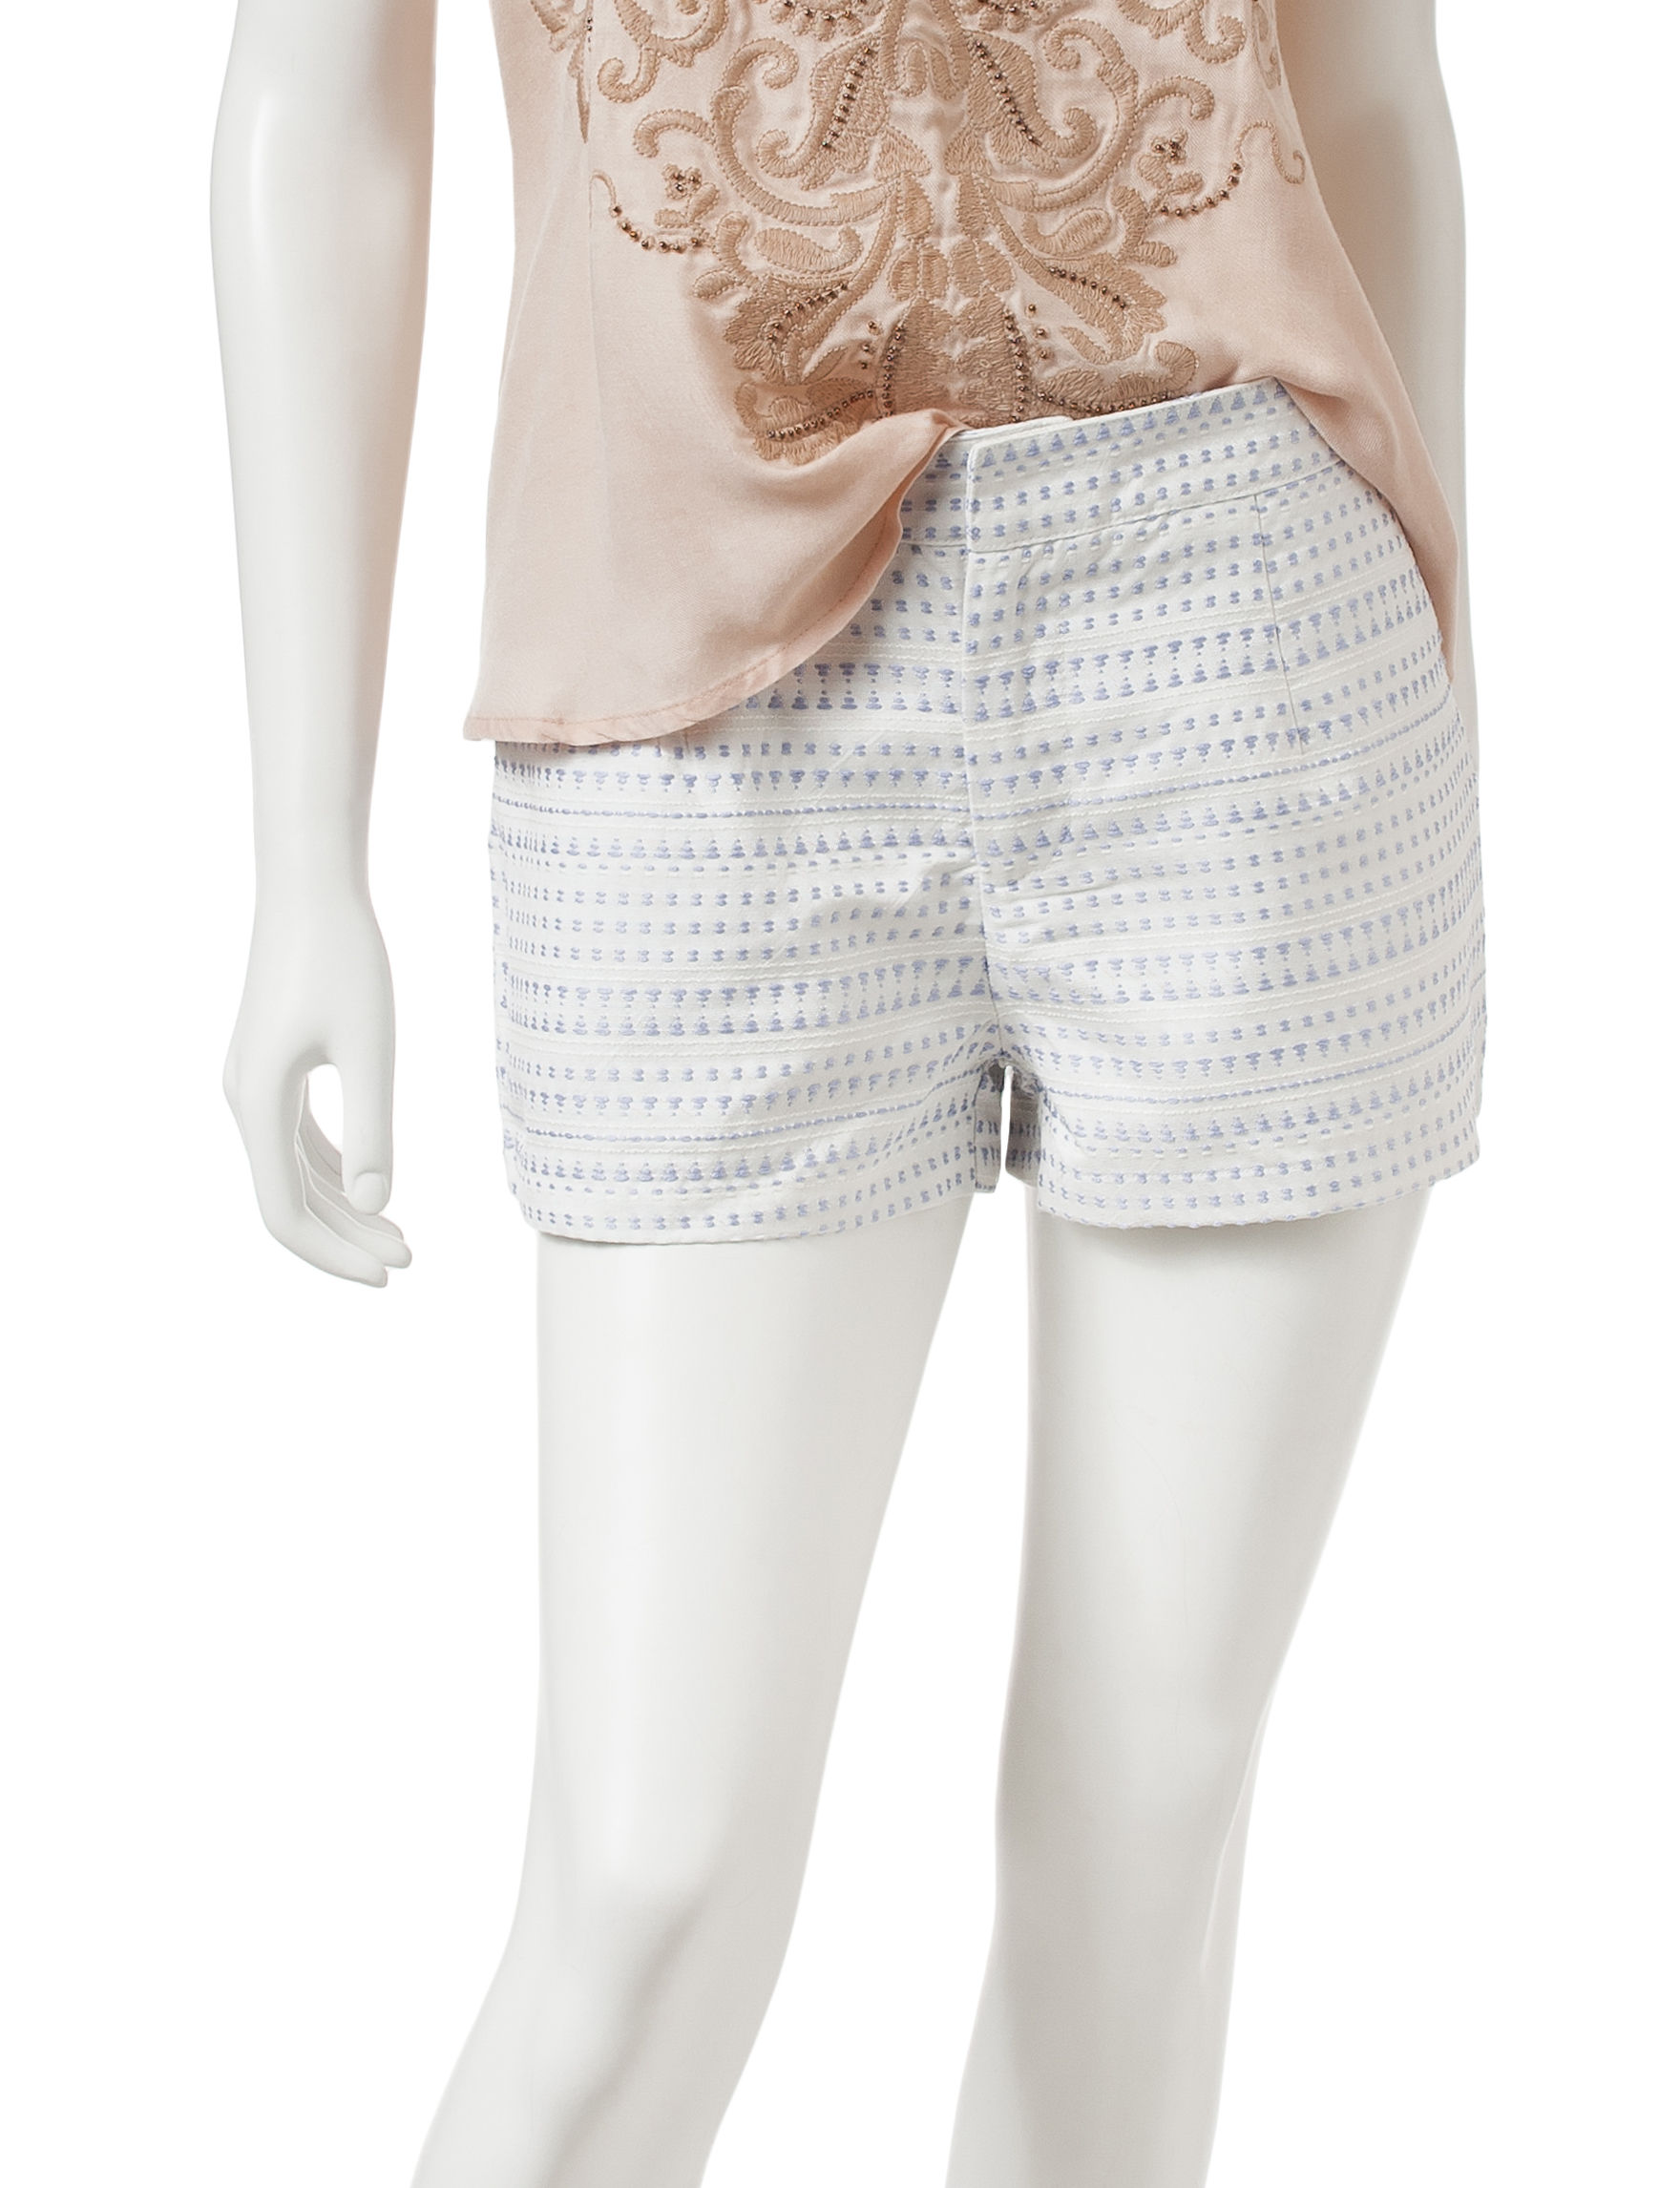 Romeo + Juliet Couture White / Silver Soft Shorts